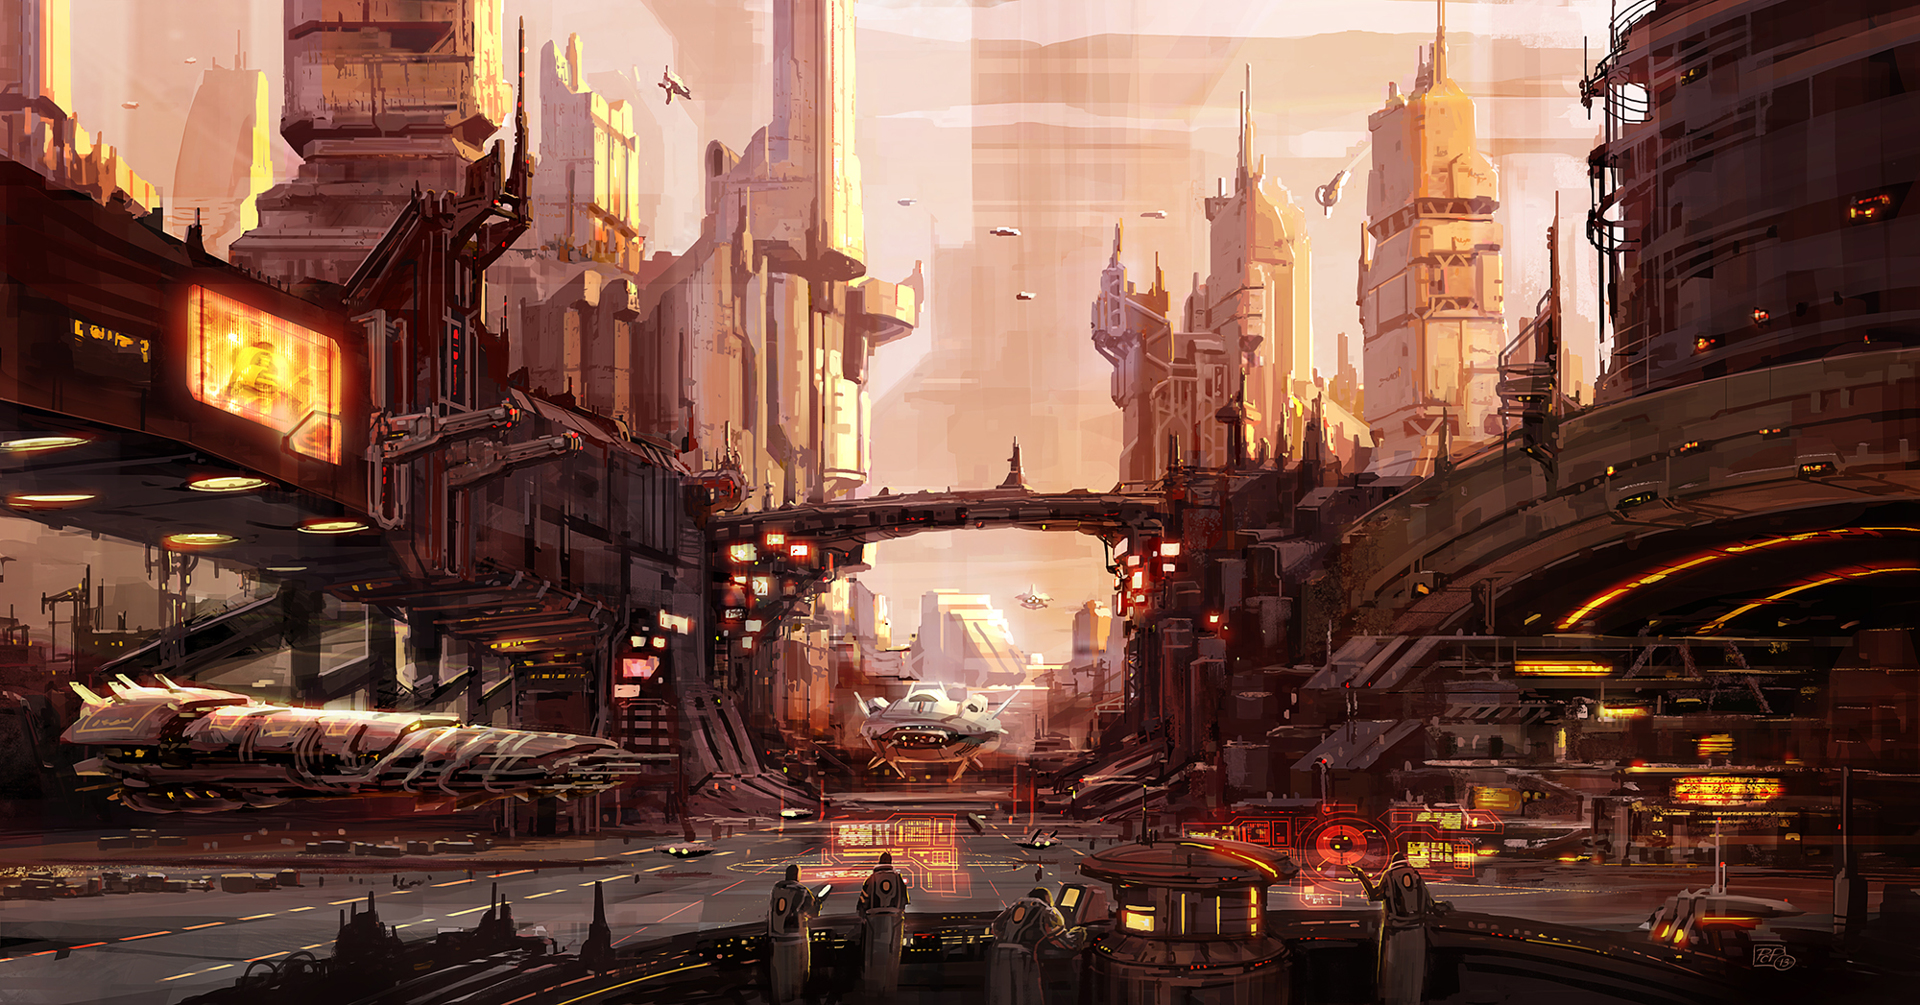 Pat presley sci fi concept artist concept art of pat presley for Design in the city